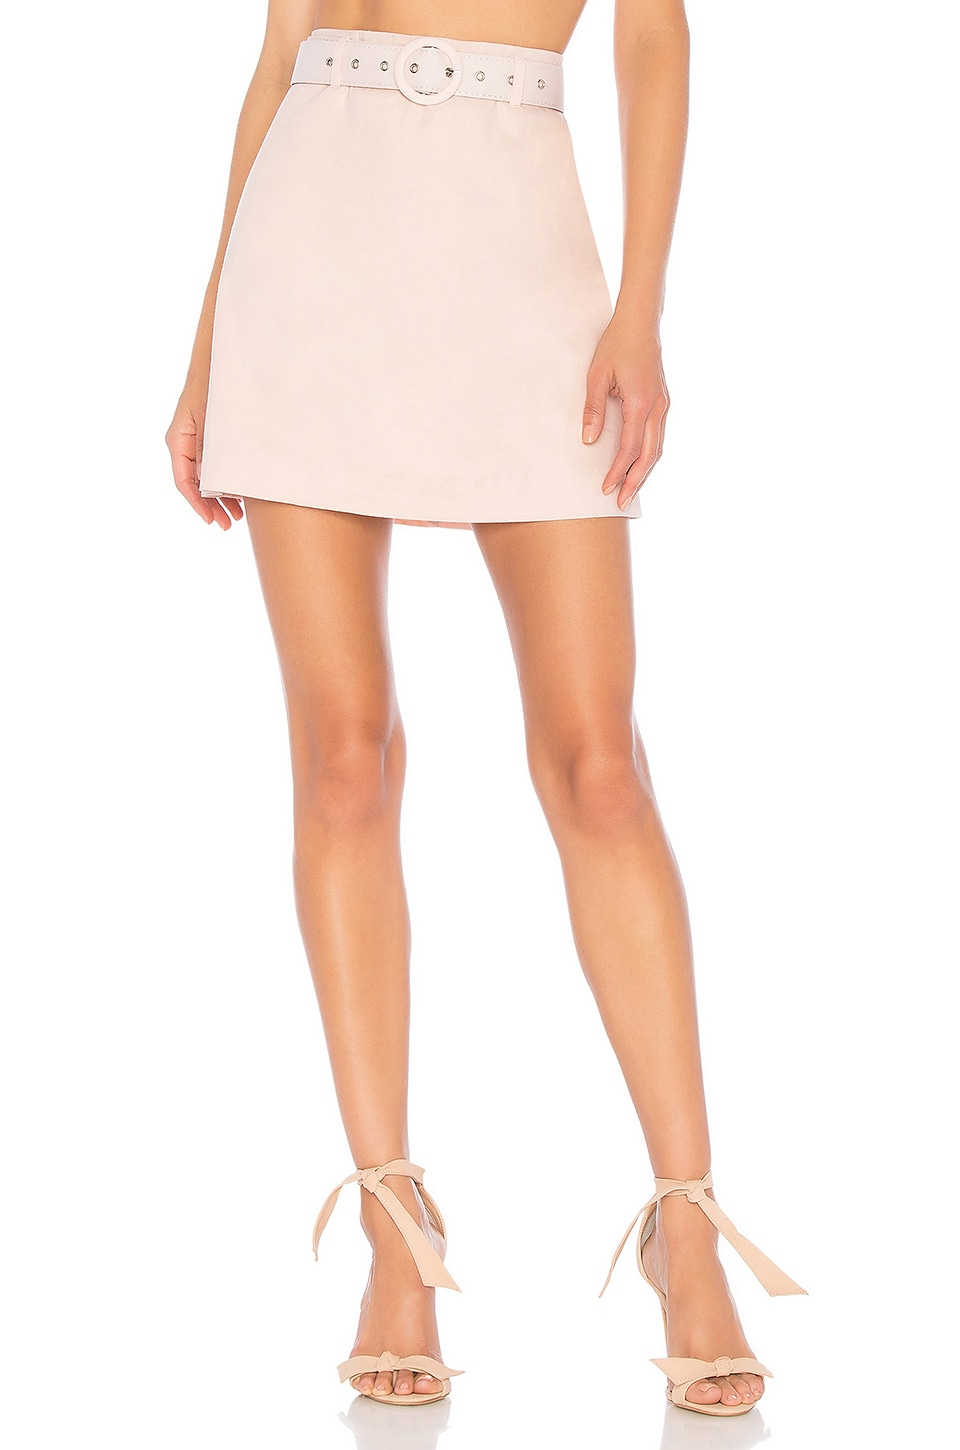 L'Academie The Paulo Mini Skirt in Light Pink